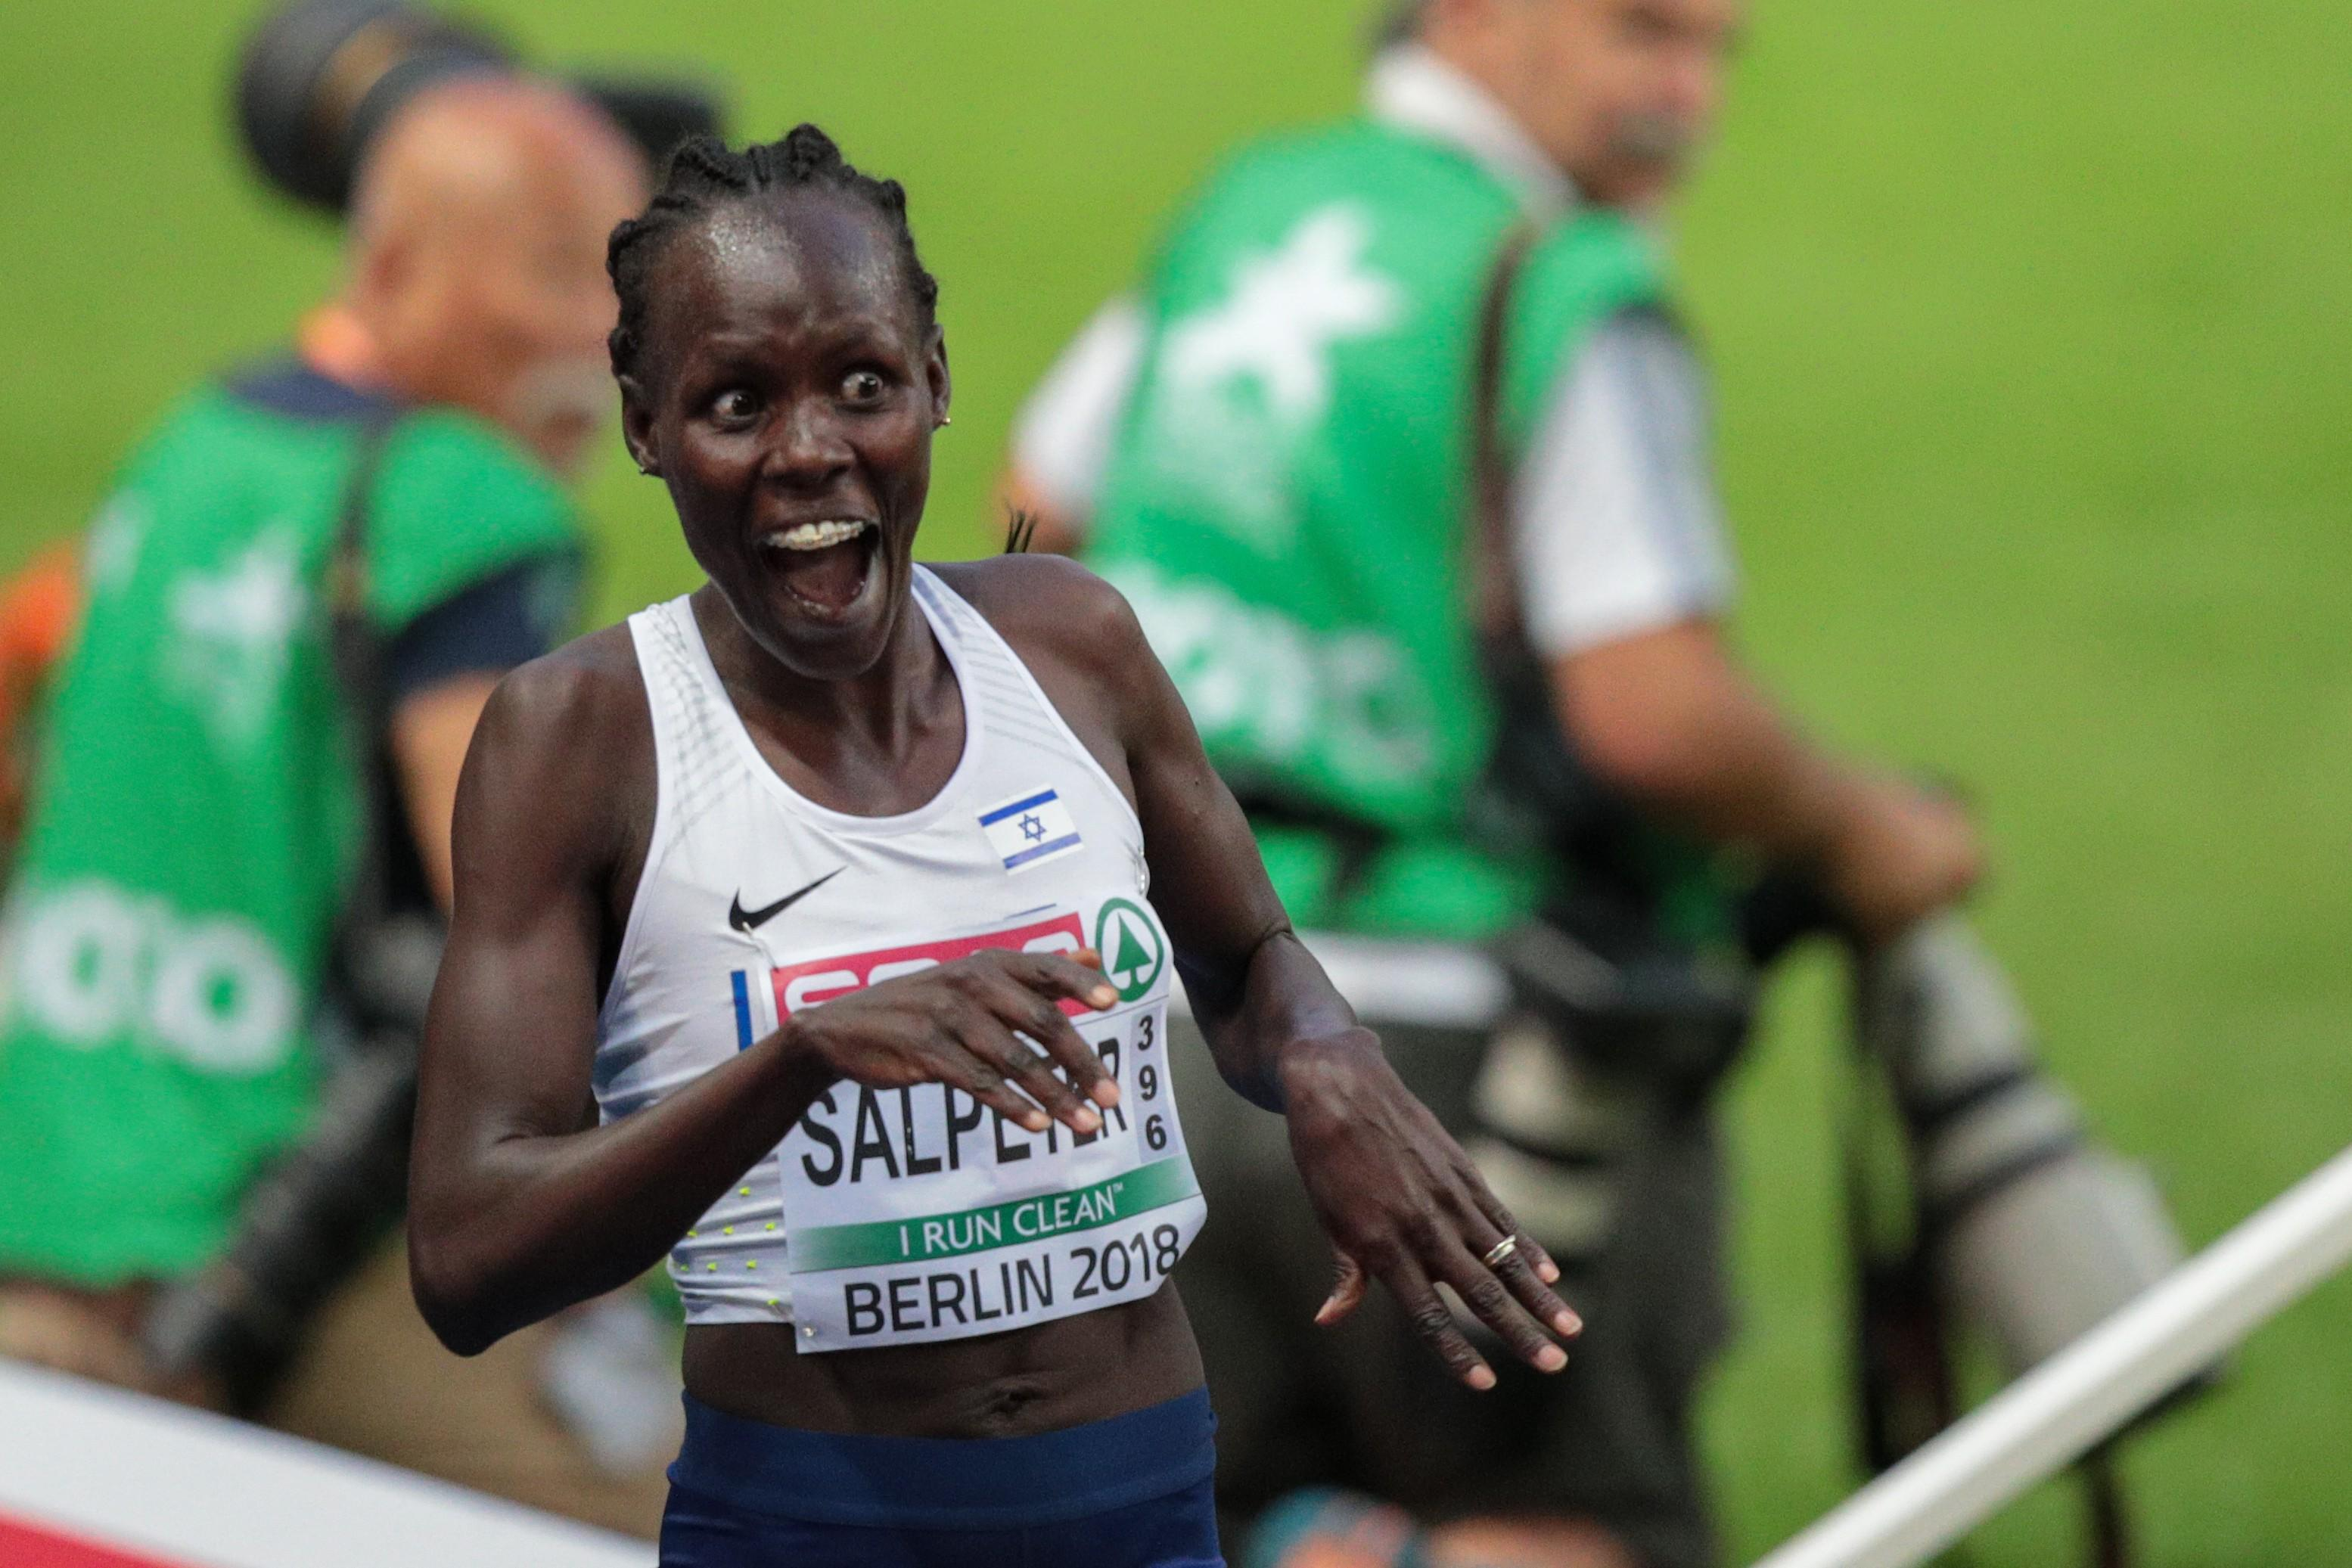 Israeli athlete Lonah Salpeter thinks she has won the silver medal in the 5,000m